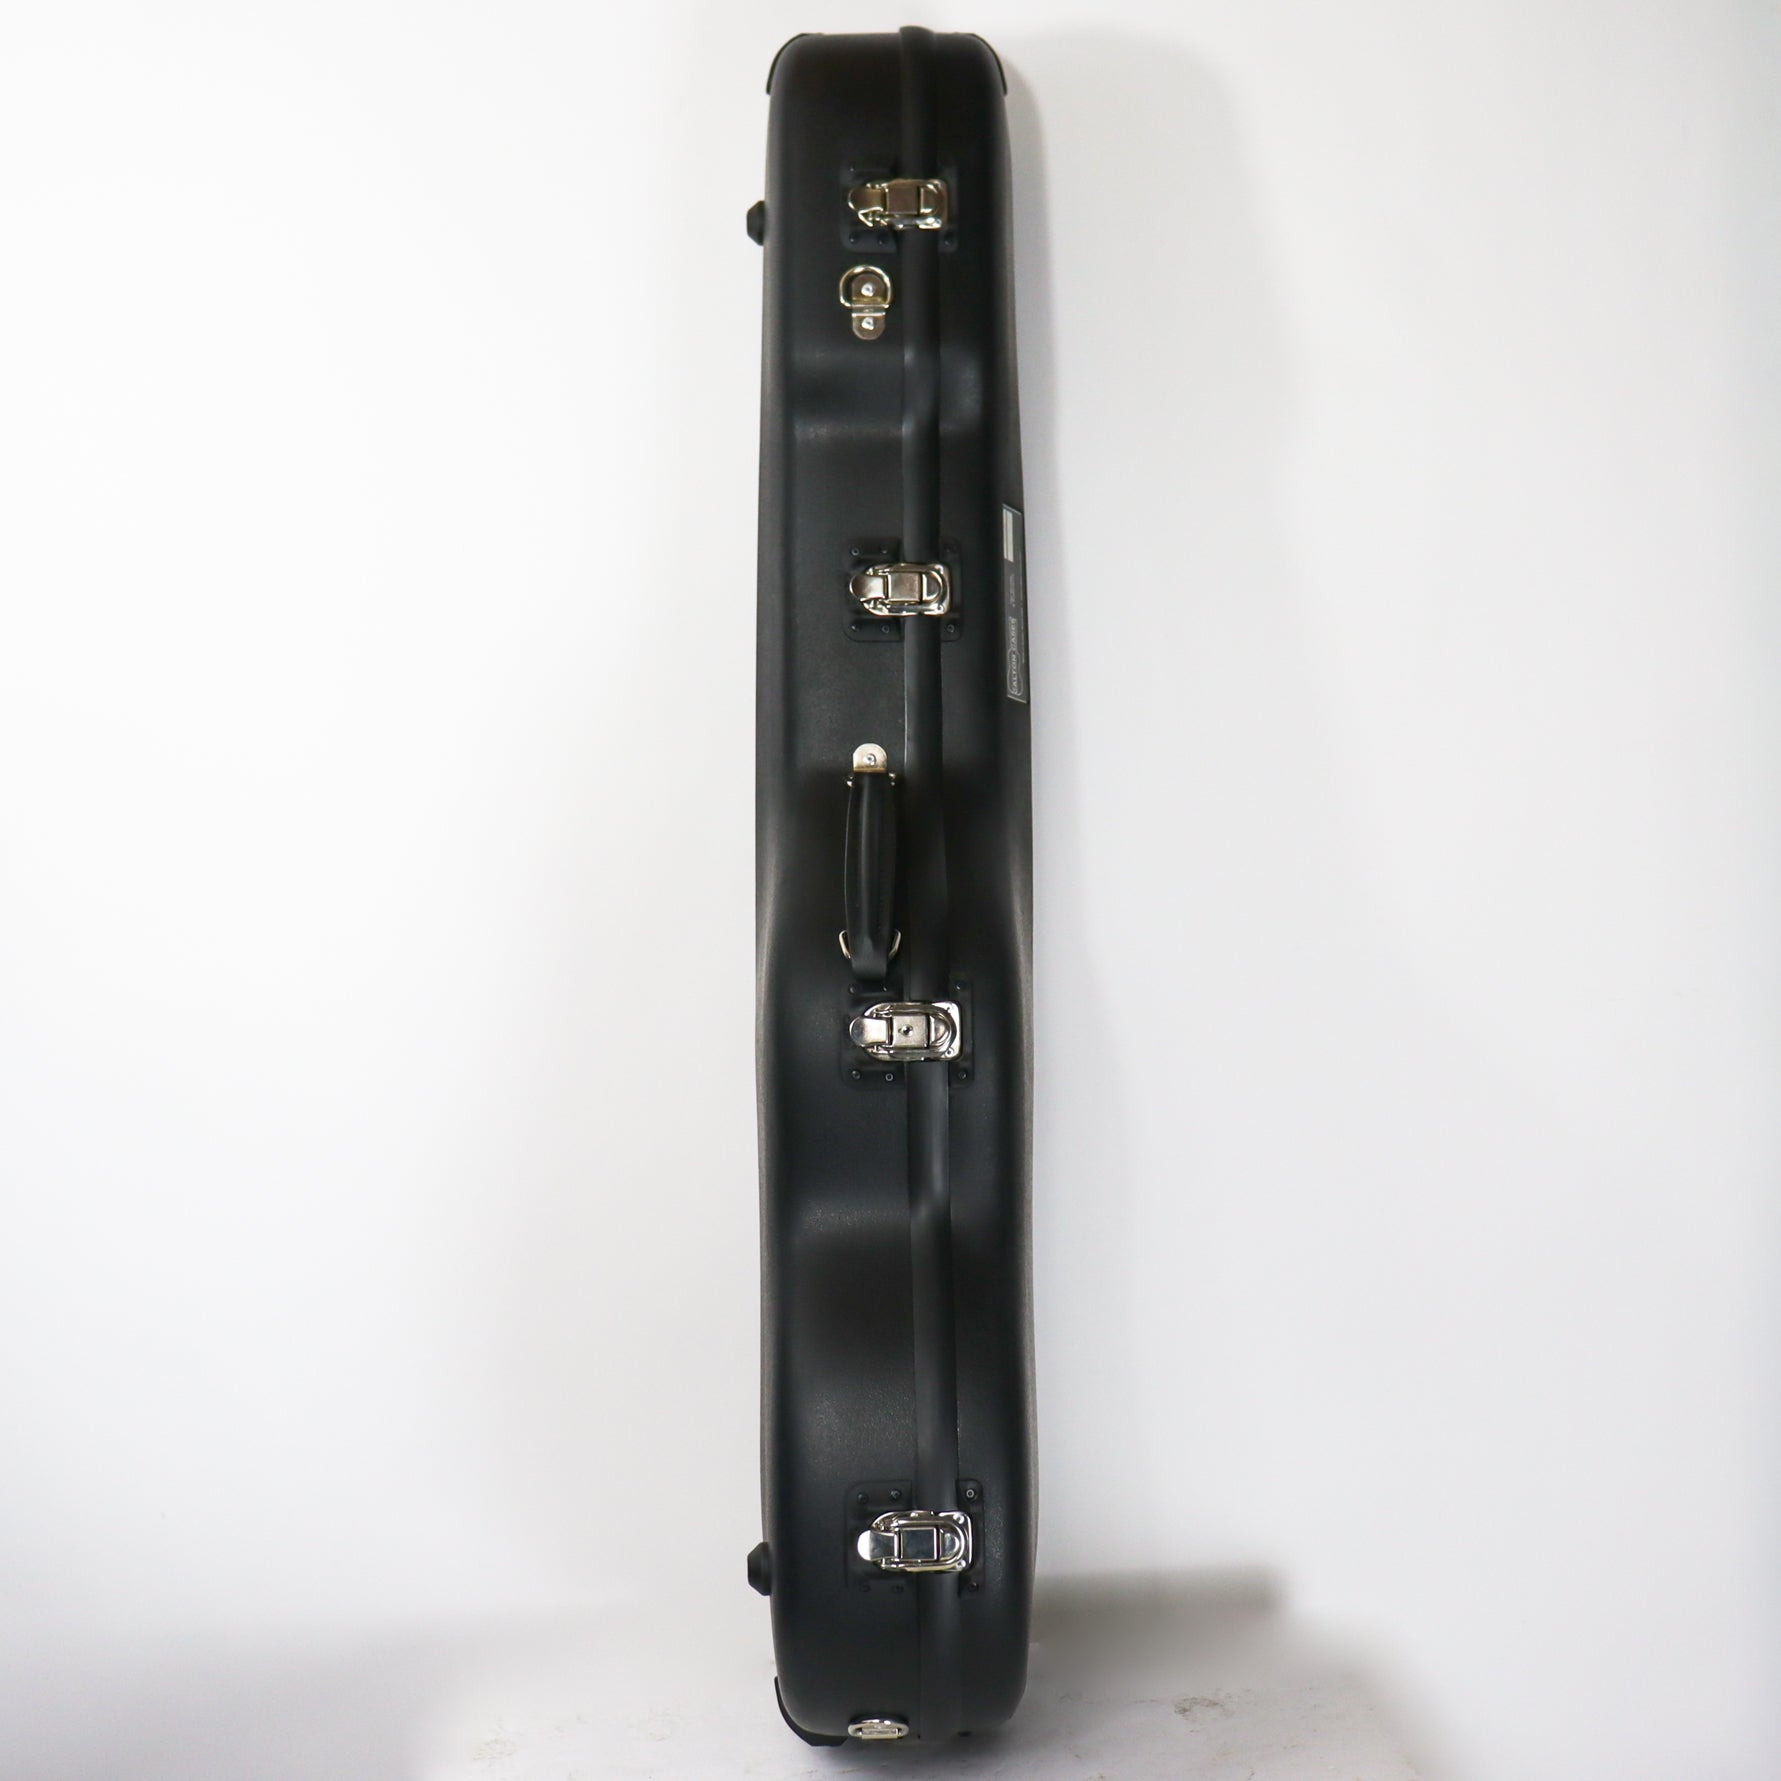 Calton Case for a Stratocaster Black Exterior & Interior with Backpack Straps